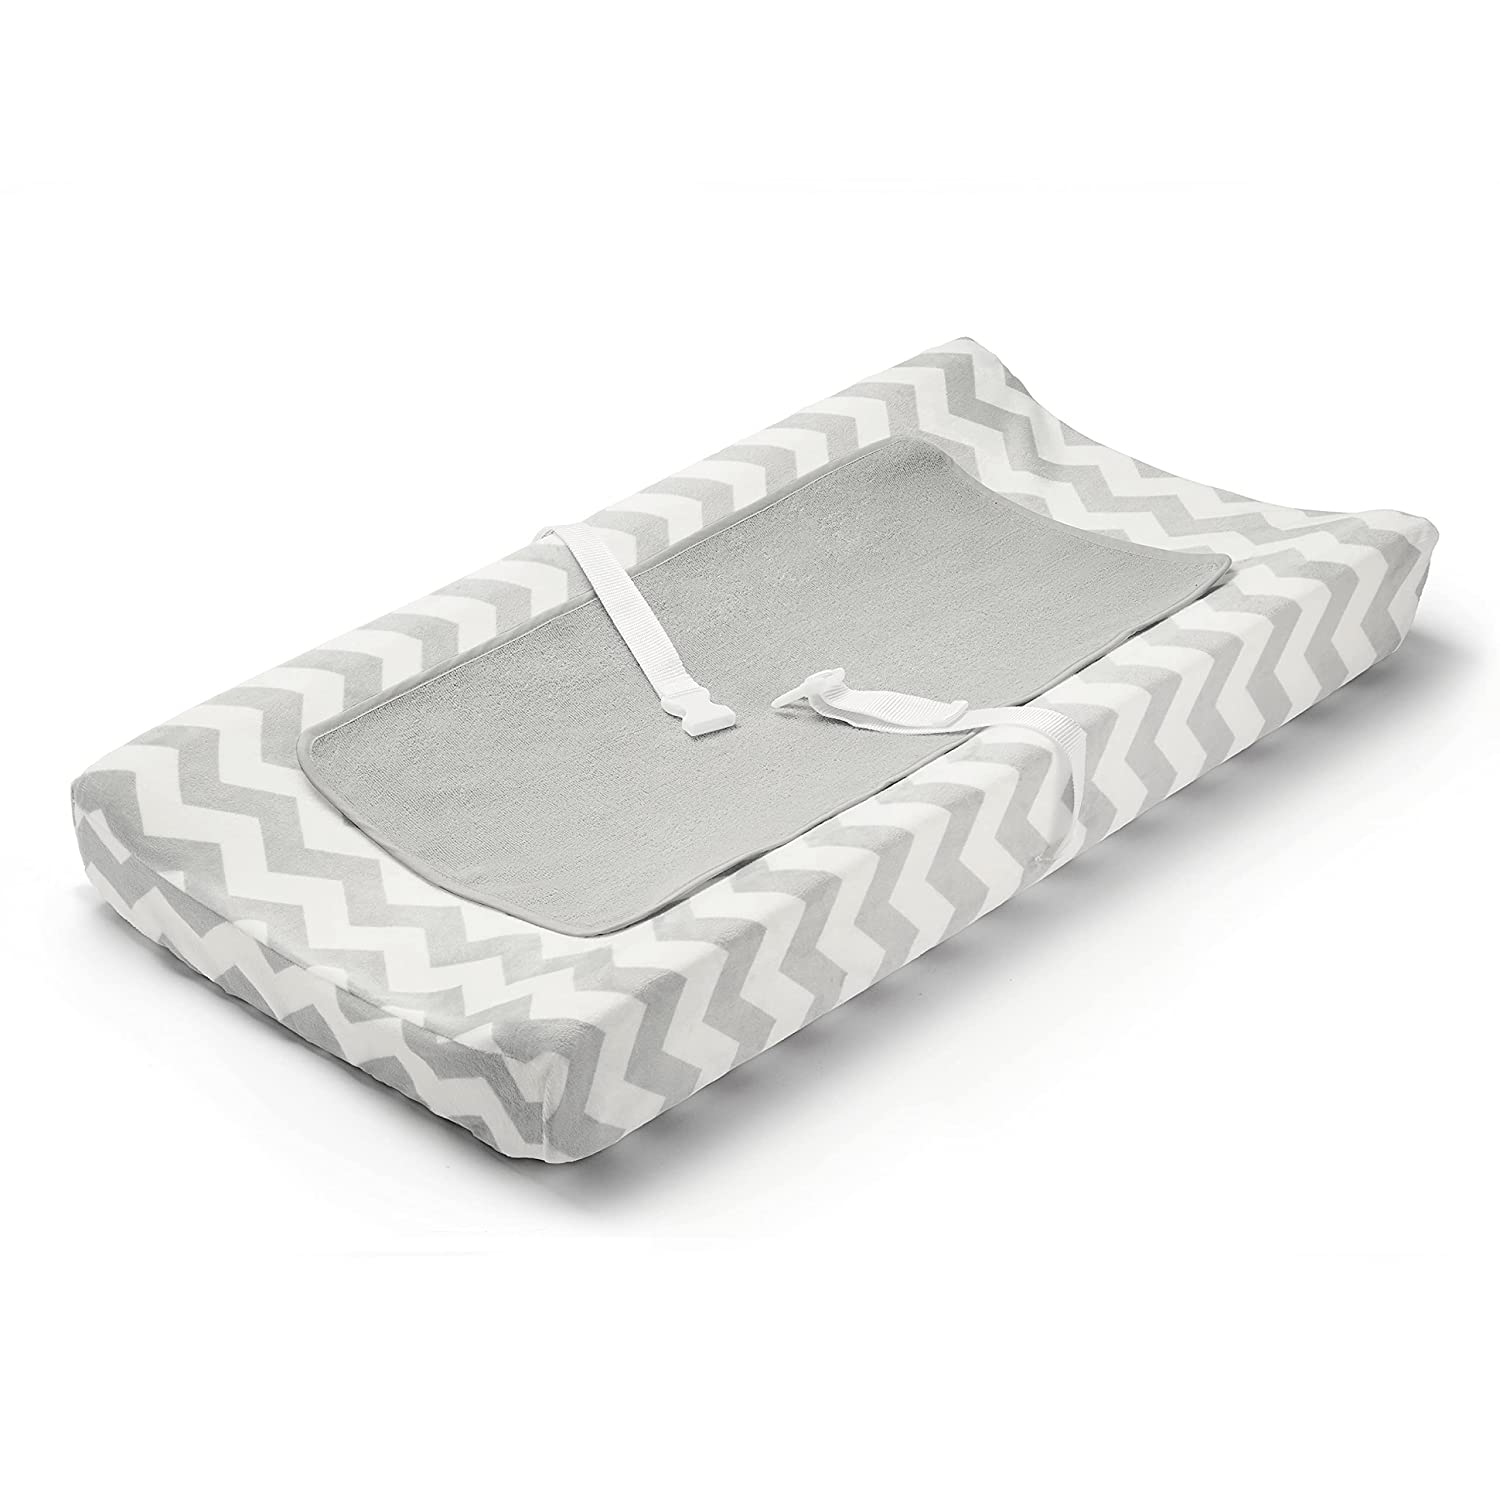 Summer Infant Basic Changing Essentials Kit with Changing Pad, Cover, and Waterproof Liner